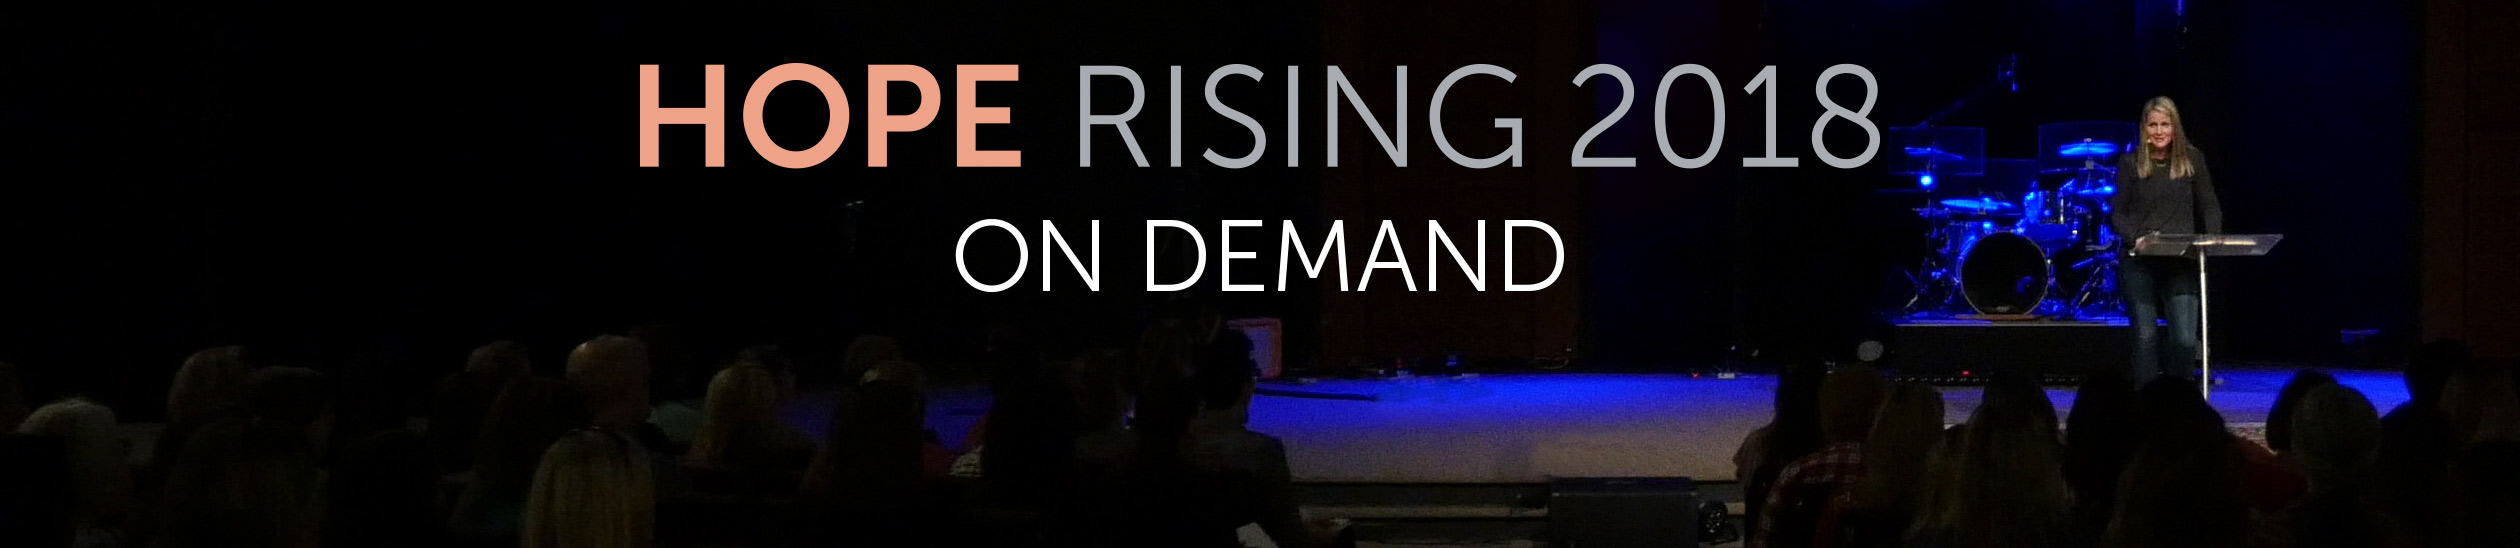 Hope Rising Conference for betrayed spouses to find hope